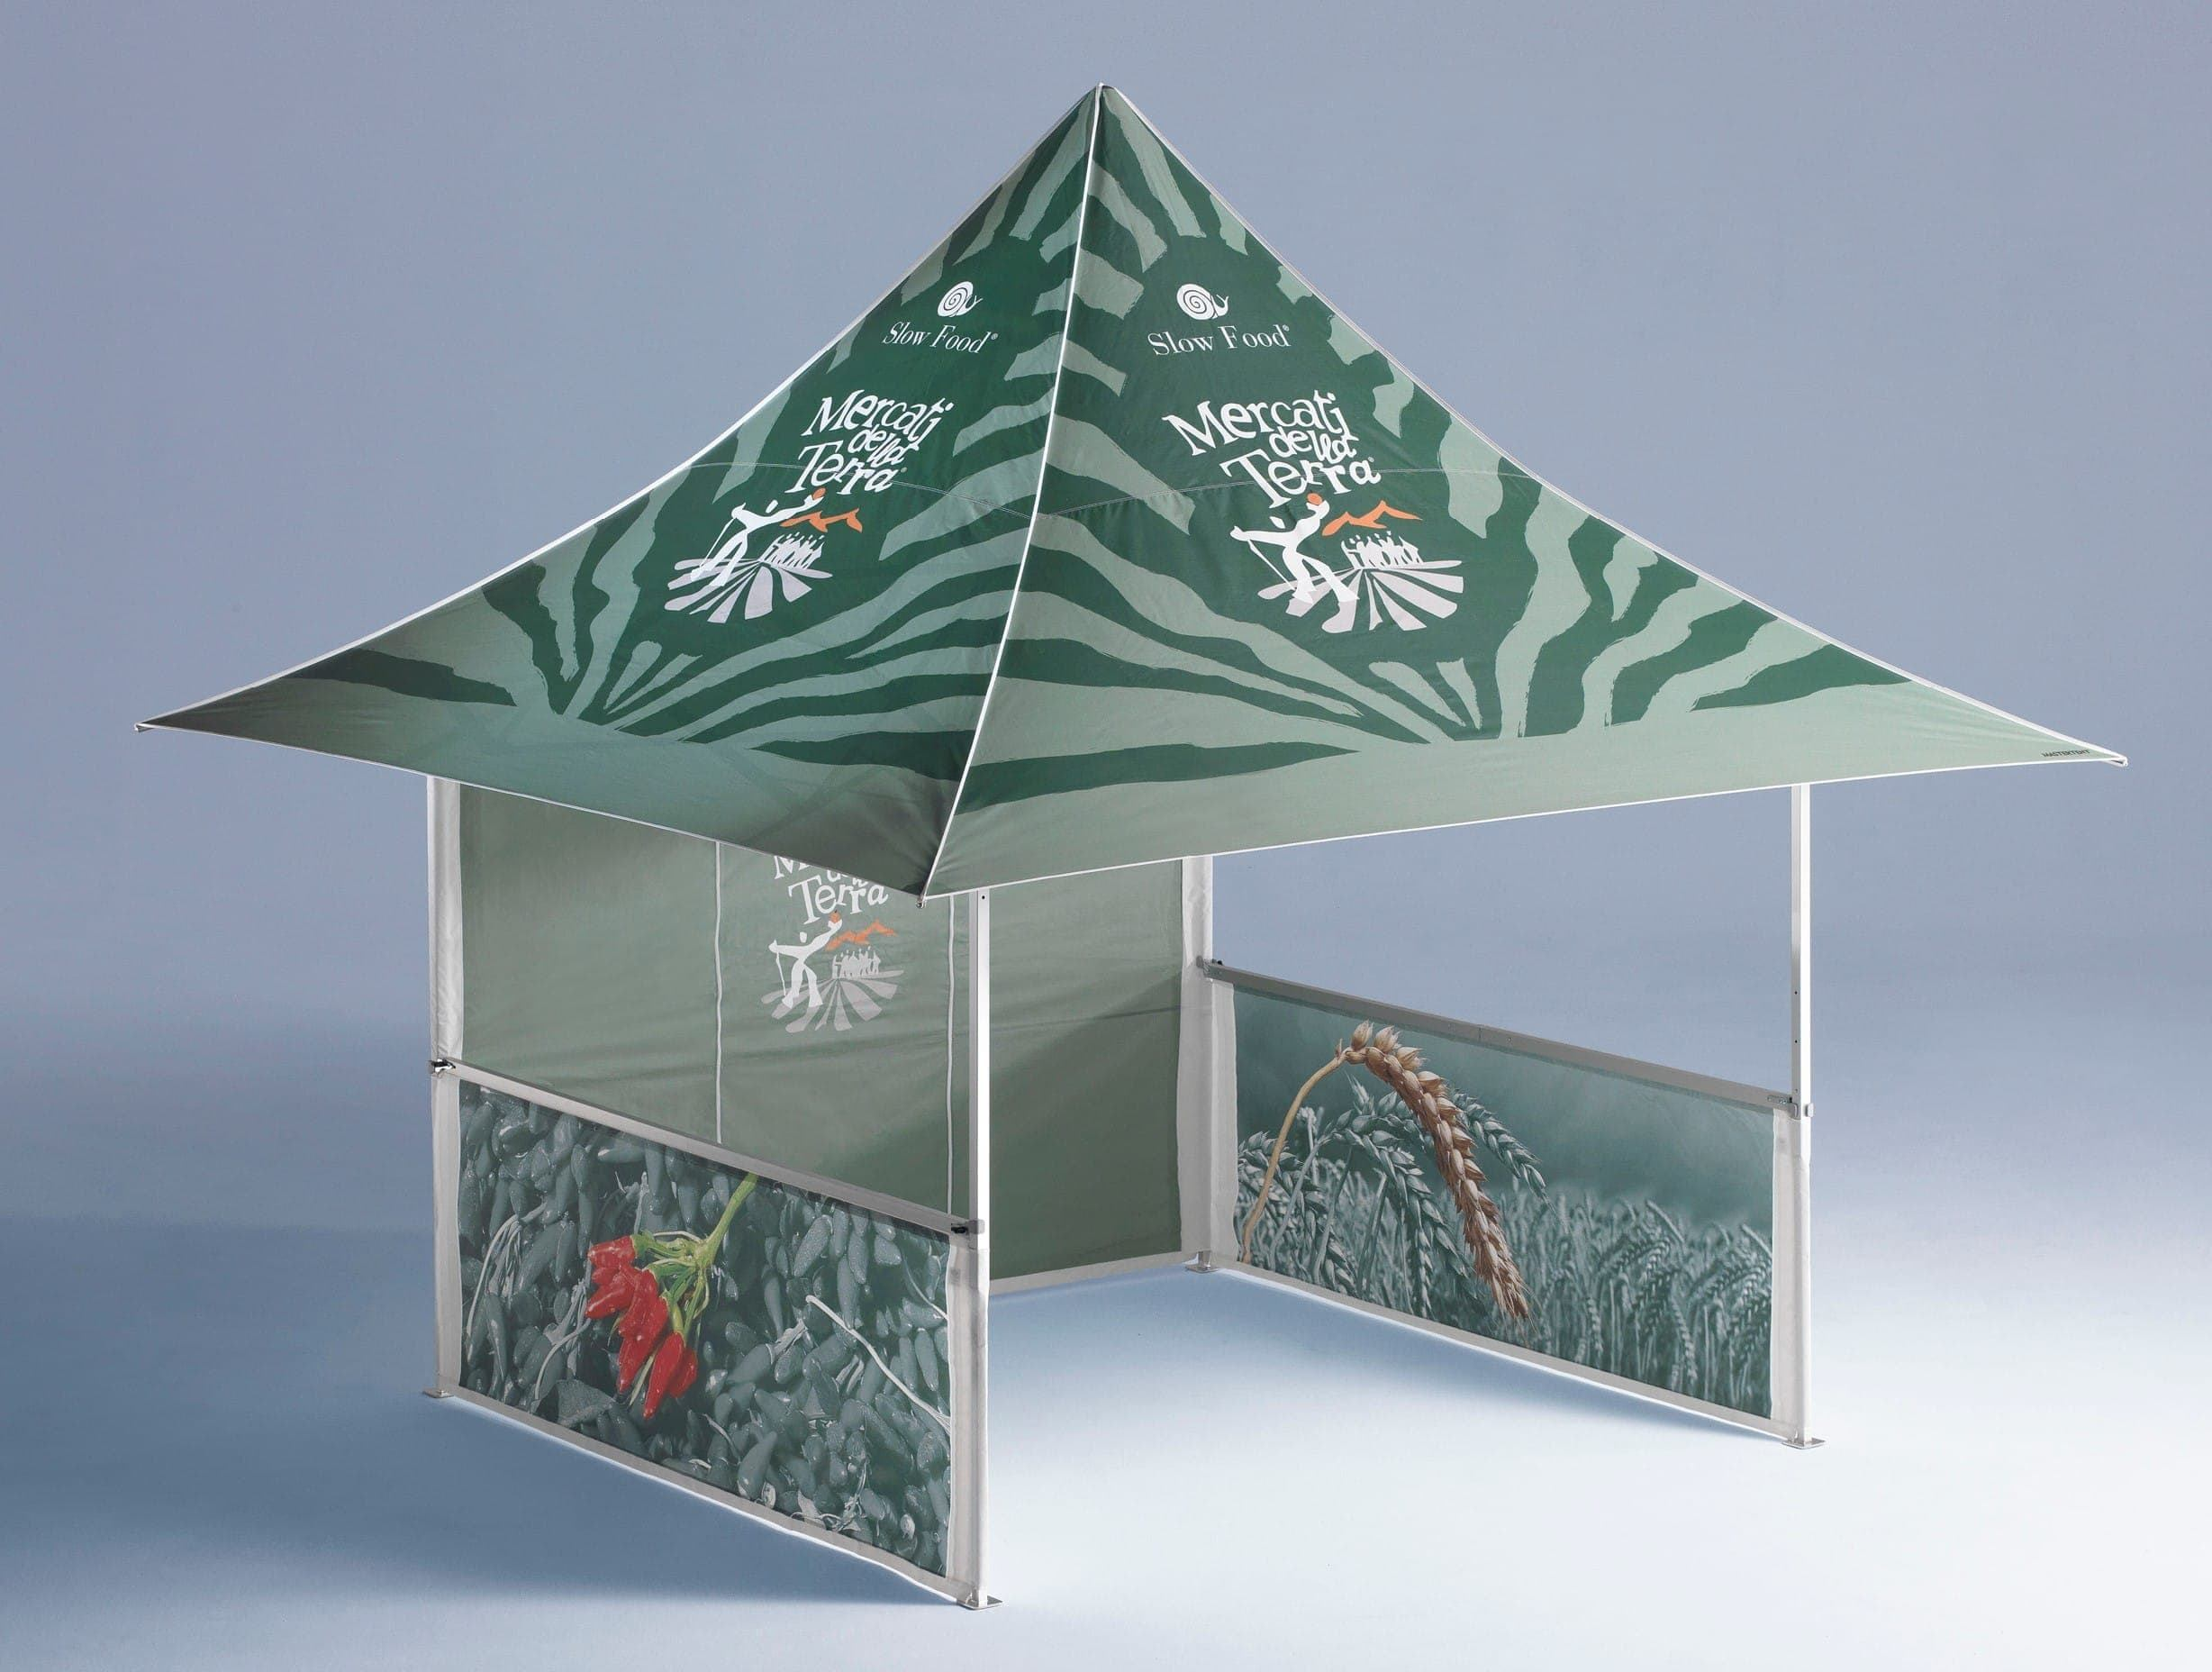 <p>Tent &#8211; Shop &#8211; Zoo</p> <p>3m x 3m Shop 4 Awnings (4.3m x 4.3m)</p> <p>Fully printed folding tent.</p>